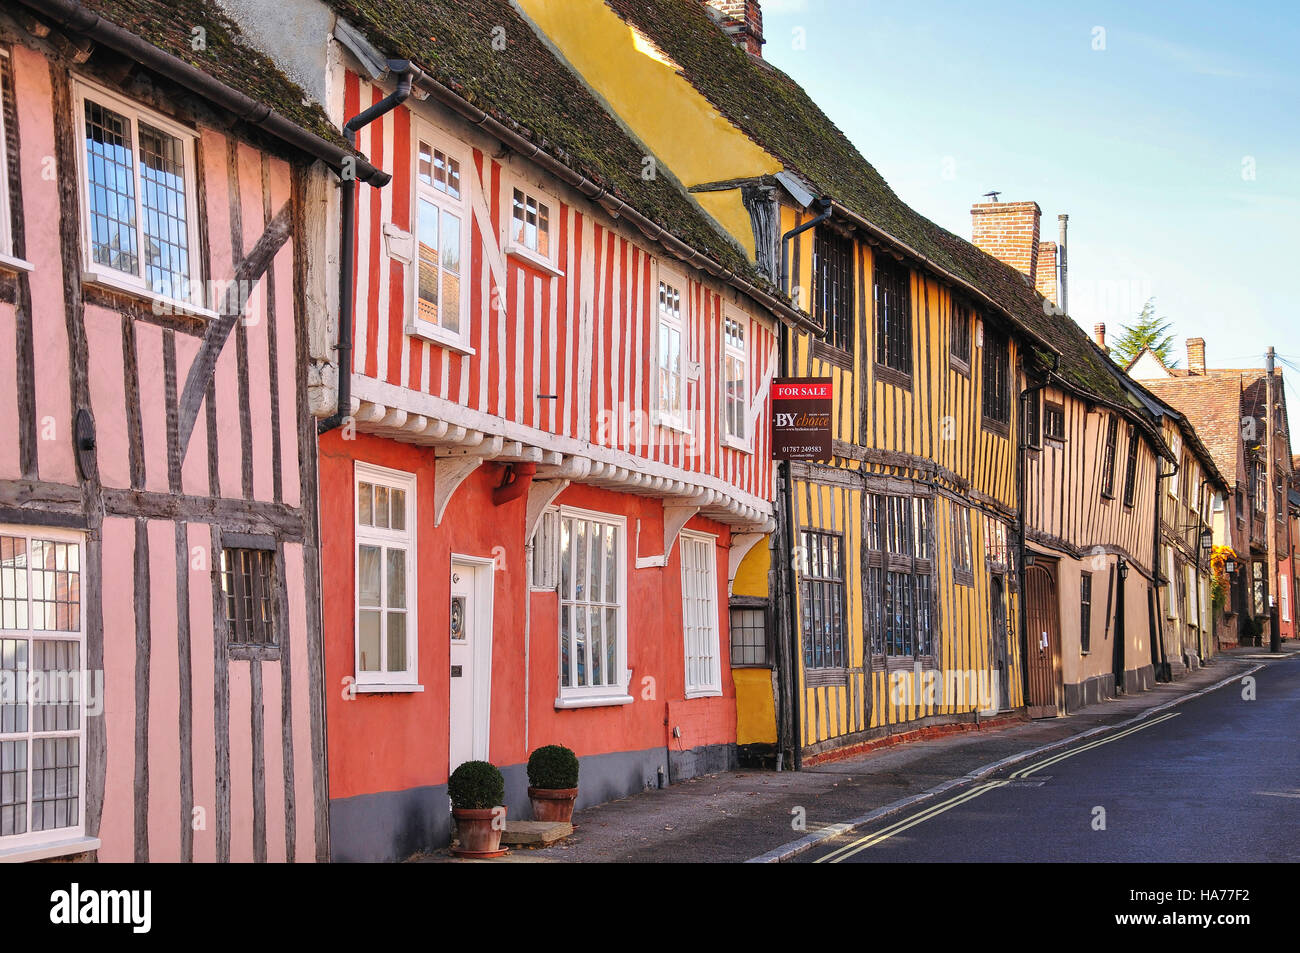 Half-timbered medieval cottages, Water Street, Lavenham, Suffolk, England, United Kingdom Stock Photo